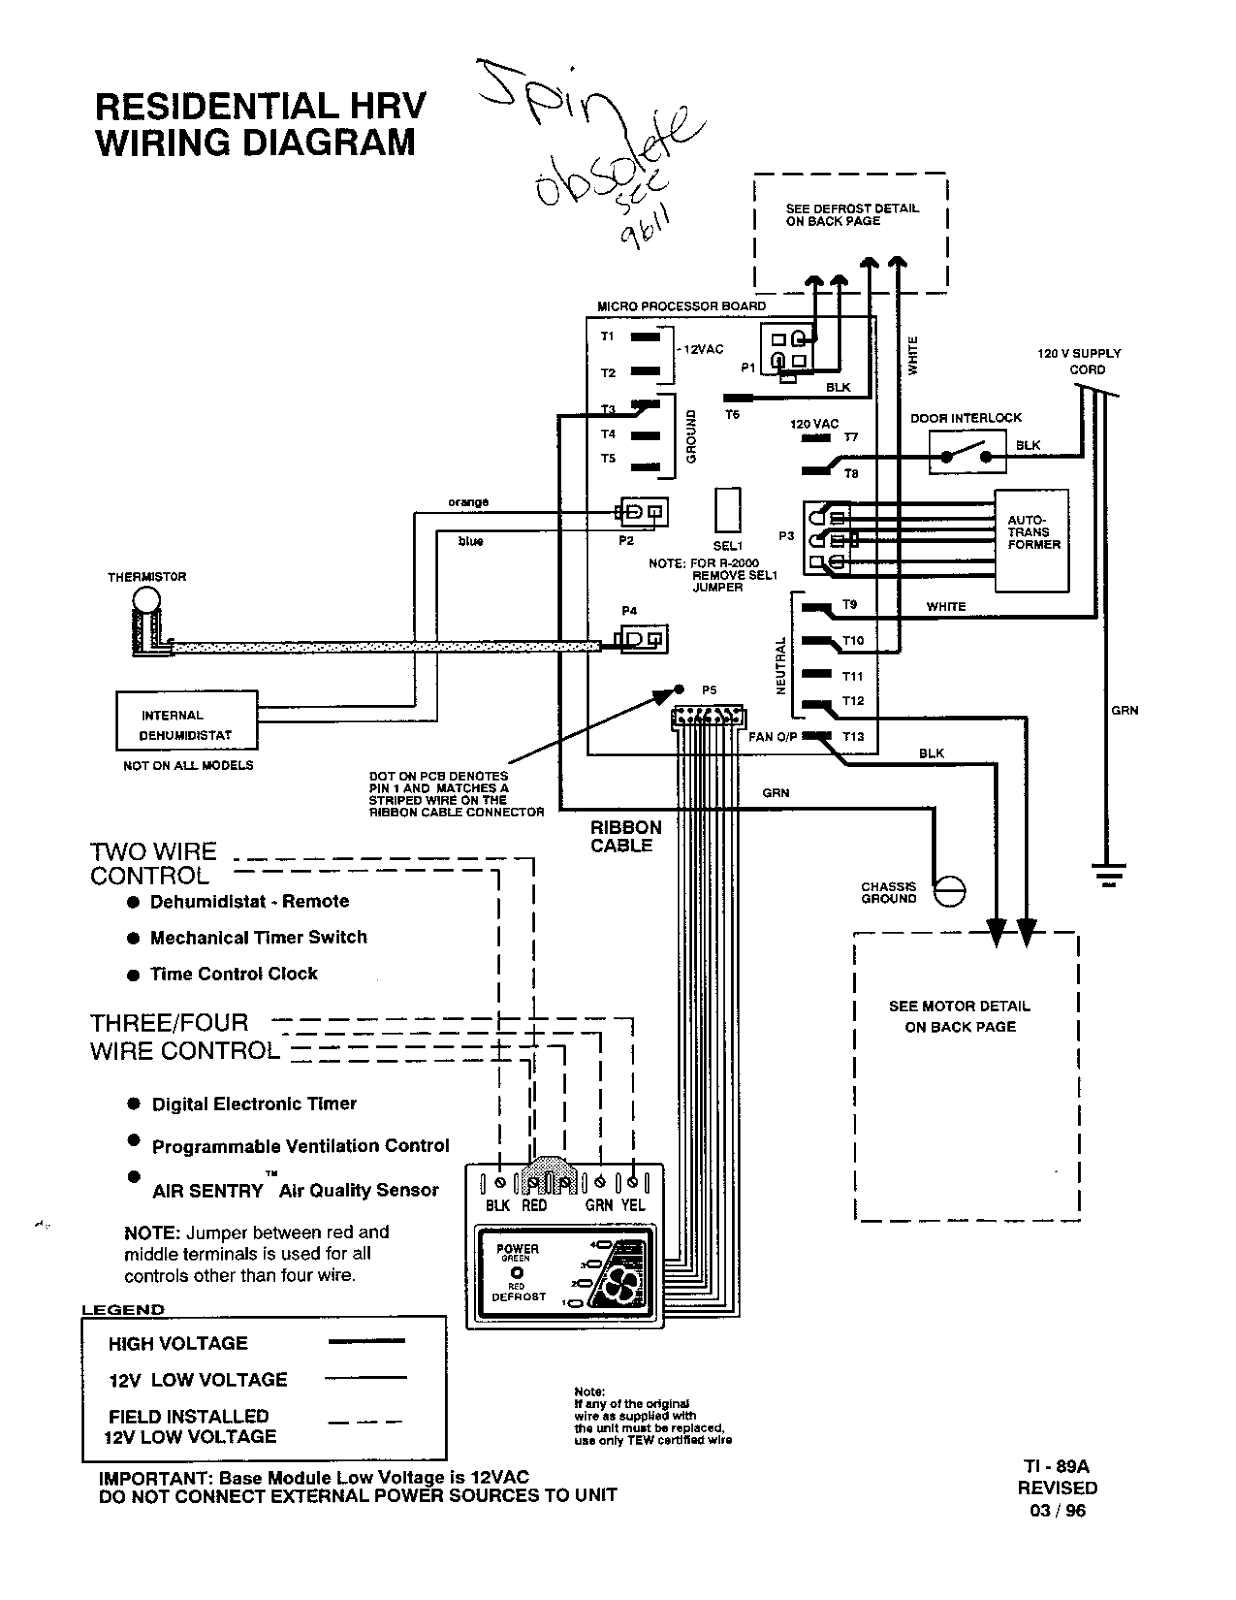 extended practice december 2013 Hrv Wiring Diagram so i'm guessing i will have to deconstruct these diagrams and make something much more simple for the electricians identity or brand lennox hrv wiring diagram